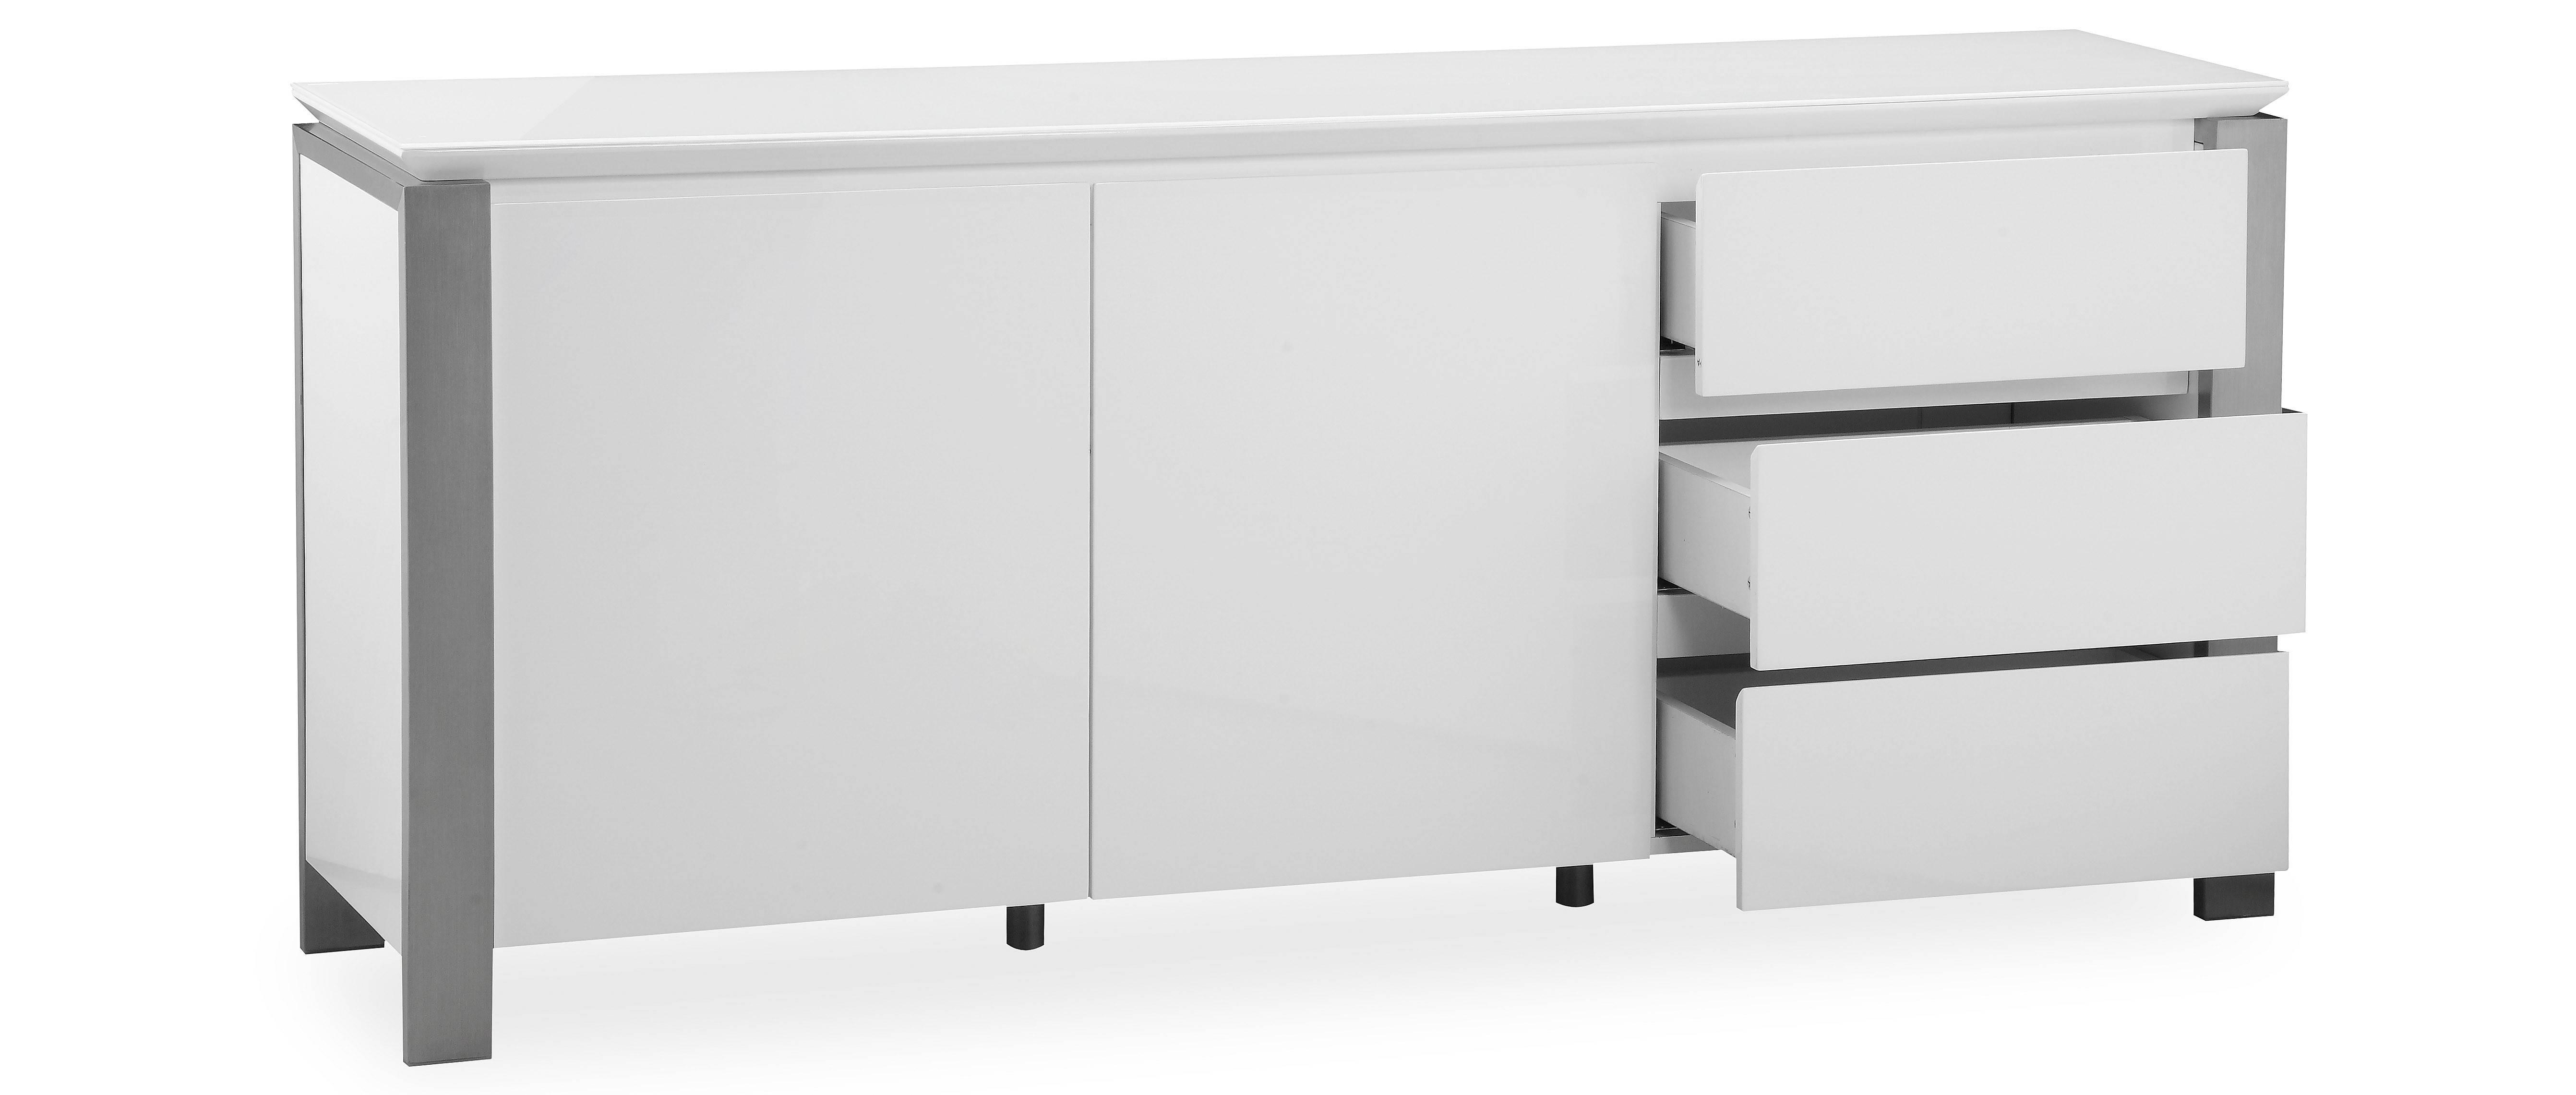 Tribeca - Extra Large Sideboard - White High Gloss within White High Gloss Sideboards (Image 28 of 30)